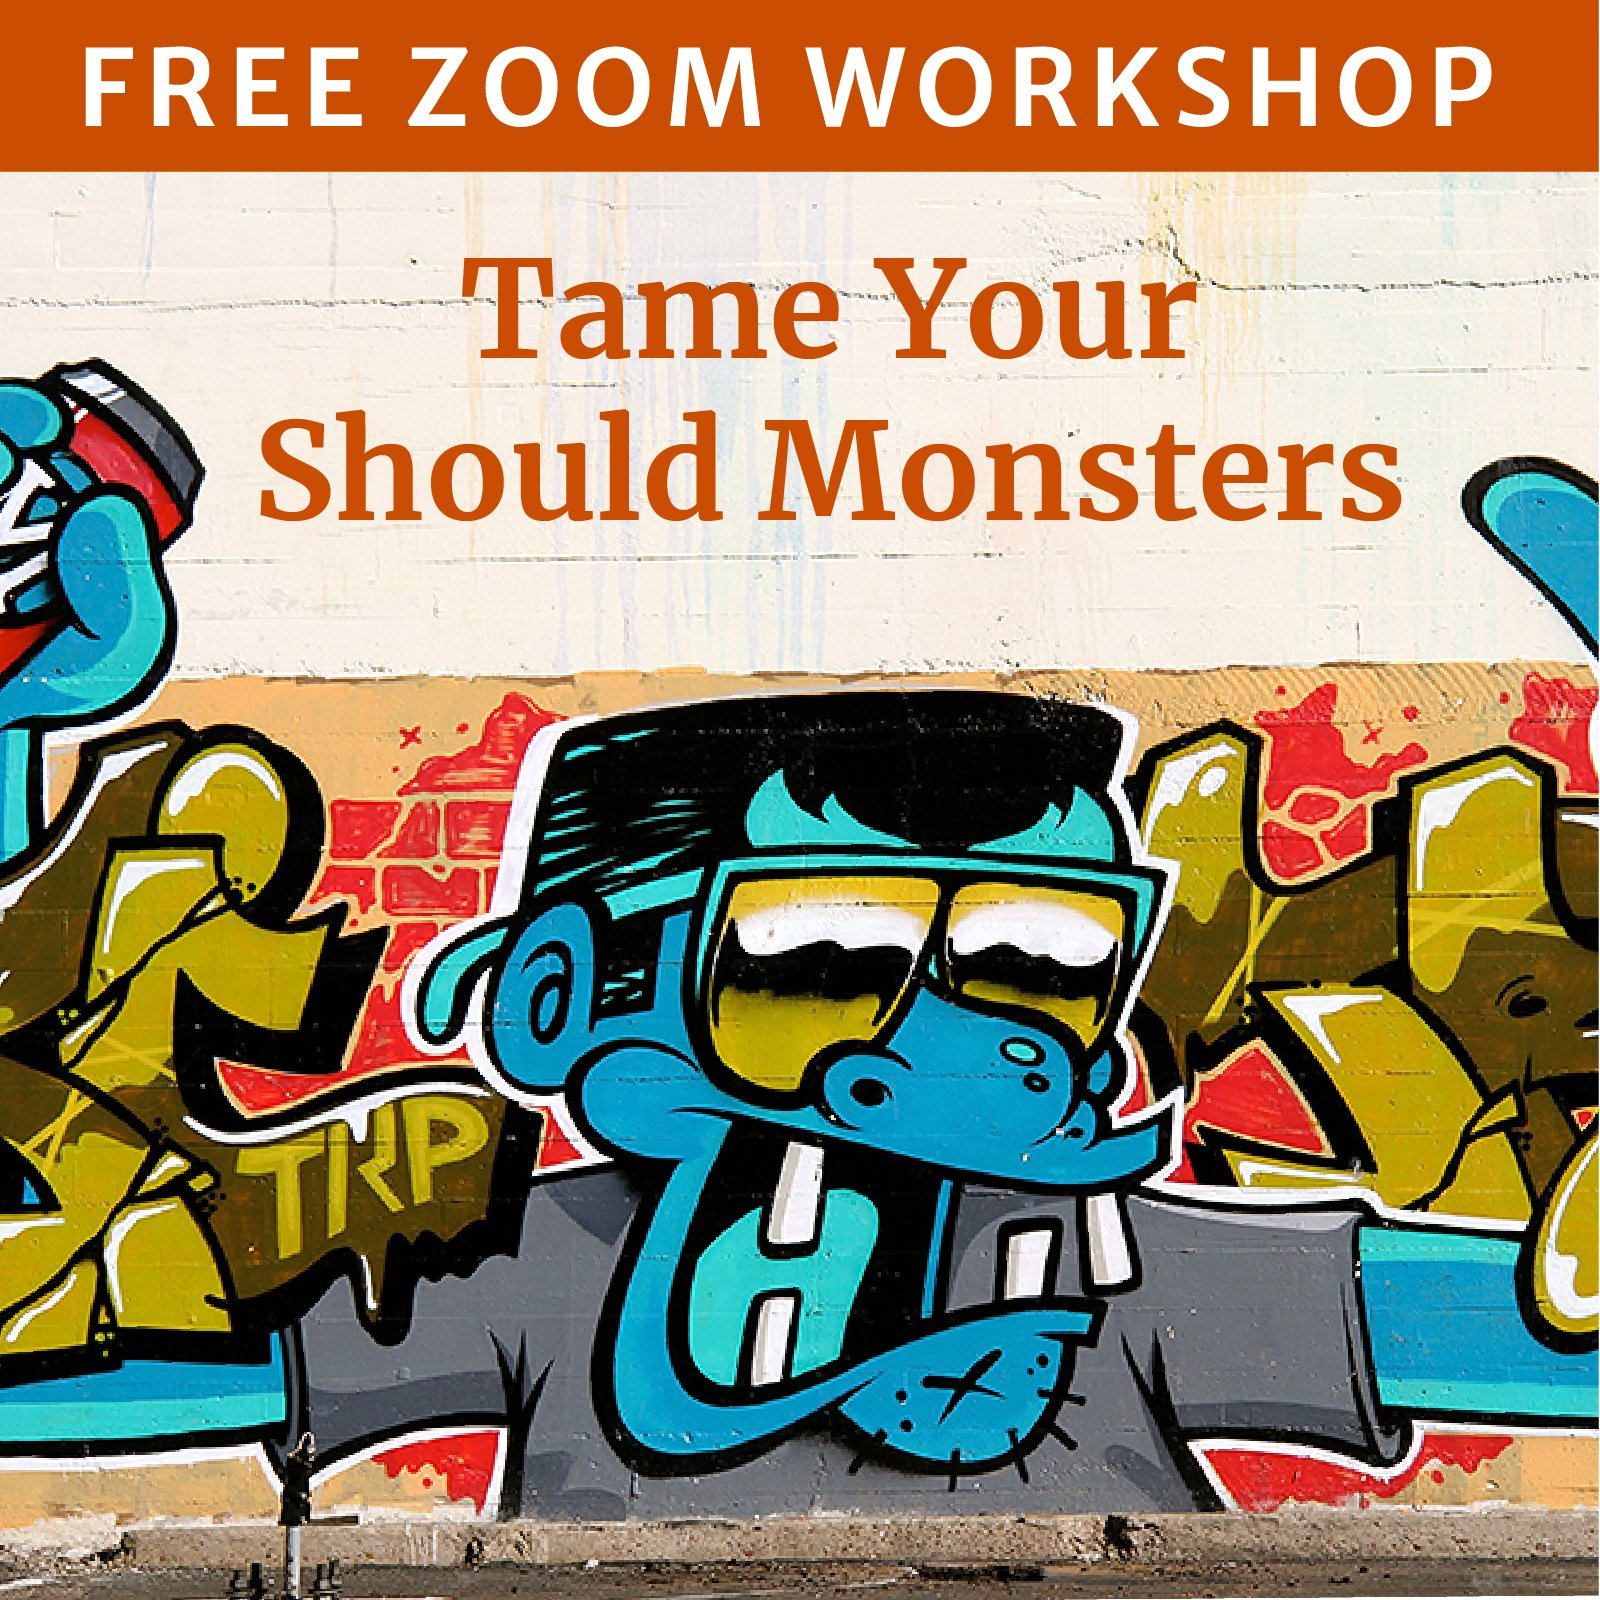 Tame Your Should Monsters Free Workshop